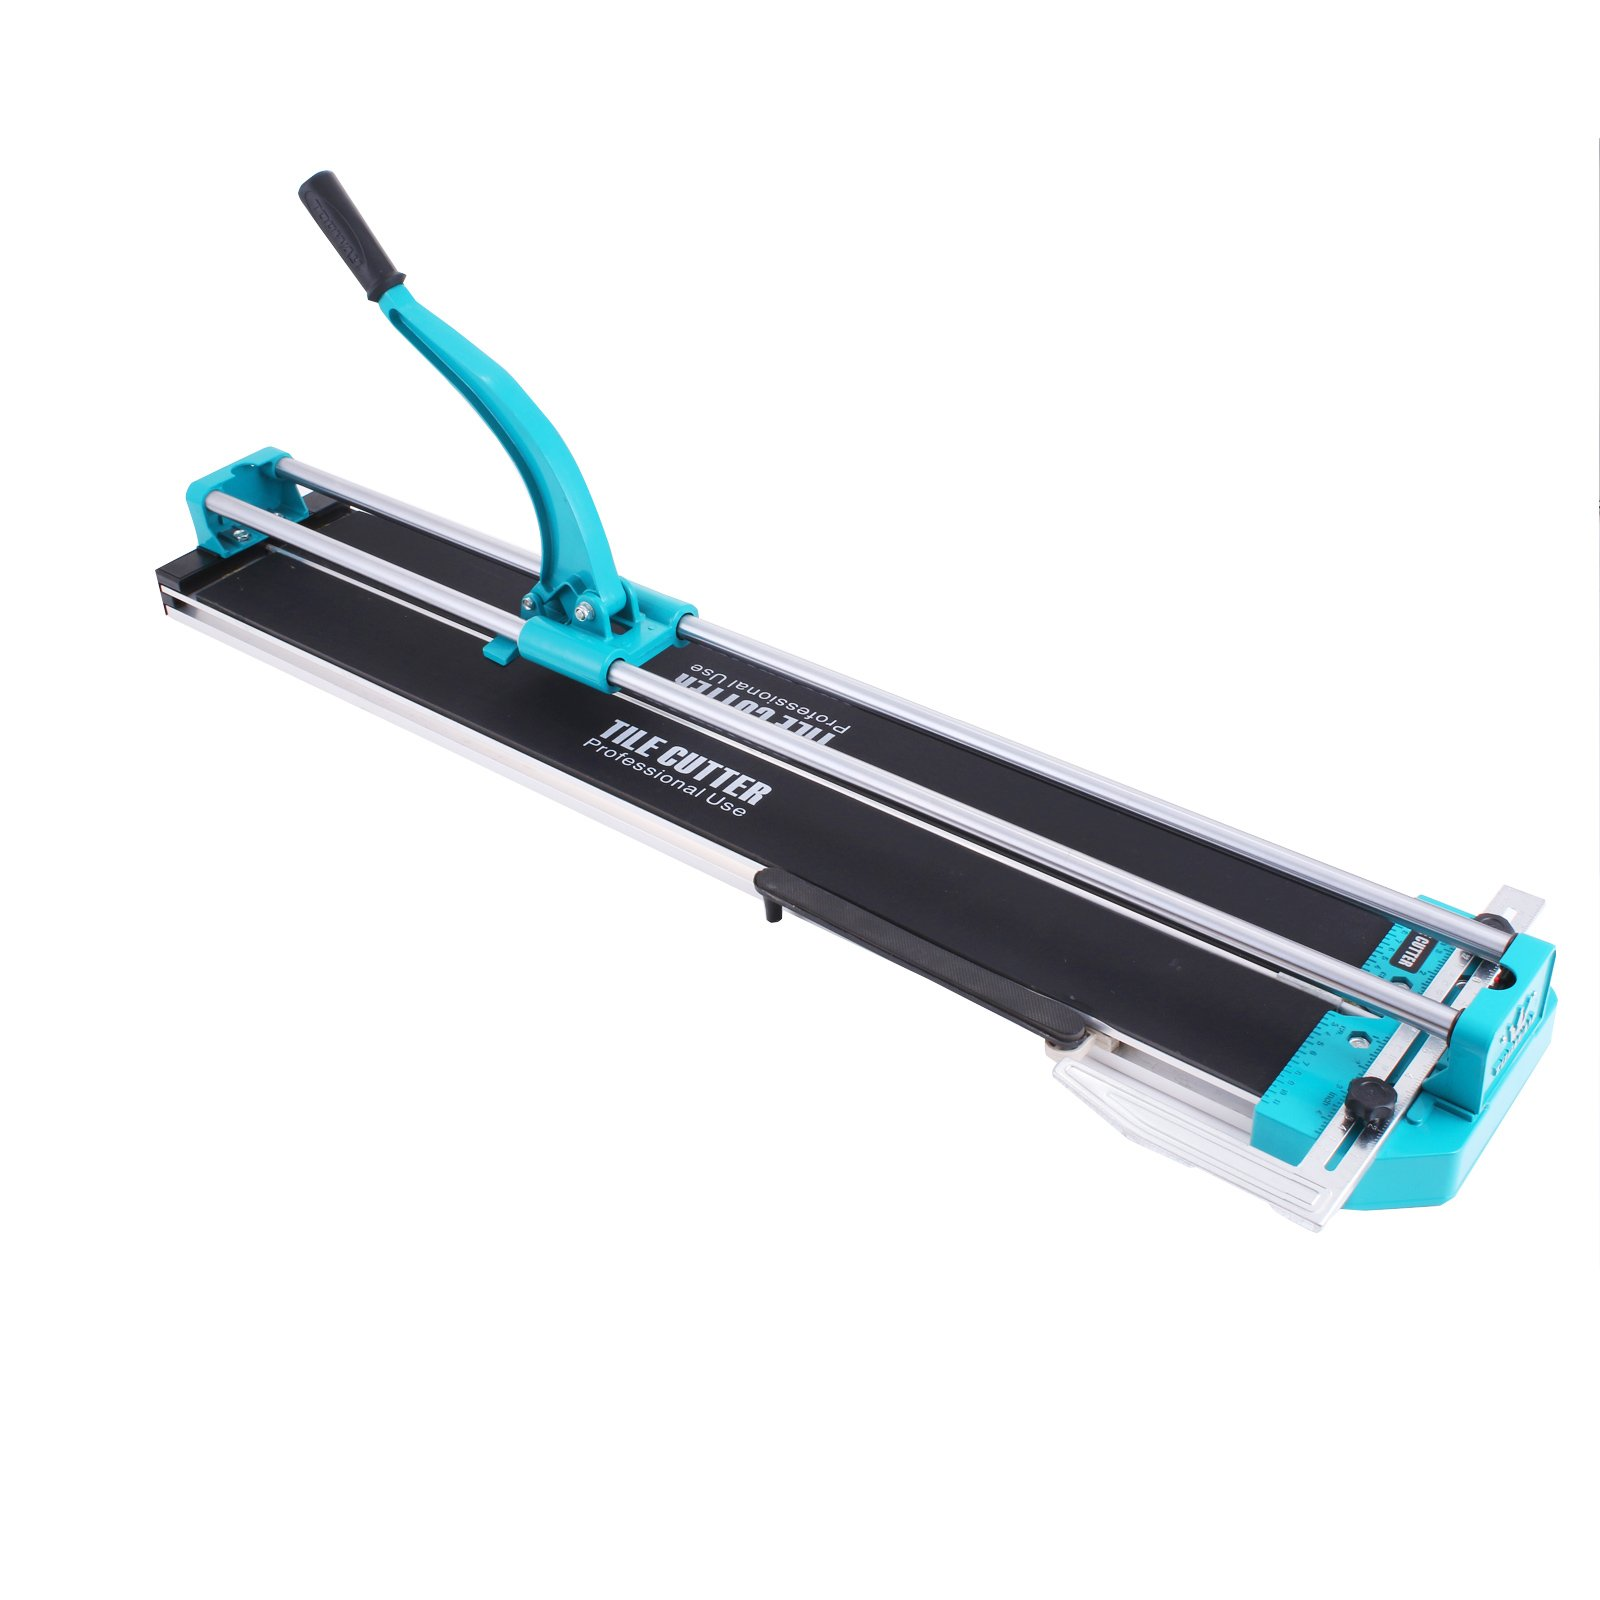 Mophorn Tile Cutter Manual 47 Inch Adjustable Laser Guide Tile Cutter Pro Heavy Duty Tile Cutter Machine for Preciser Cutting of Porcelain Ceramic Floor Tiles (47 Inch)